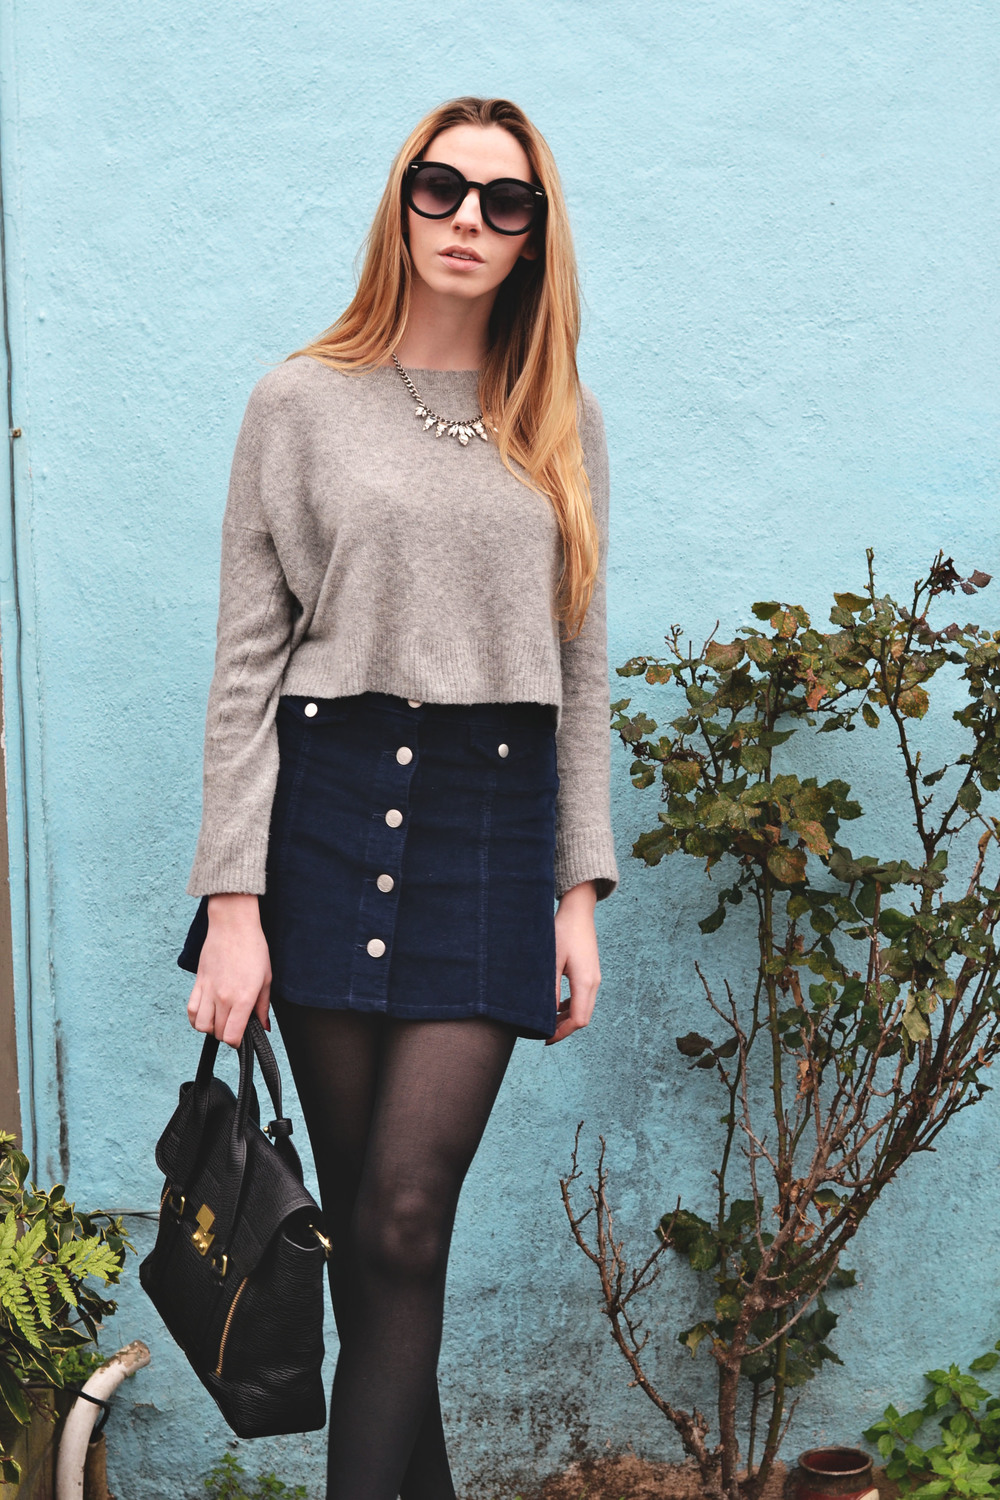 Corduroy Skirt & Cropped Sweater (via Girl x Garment)